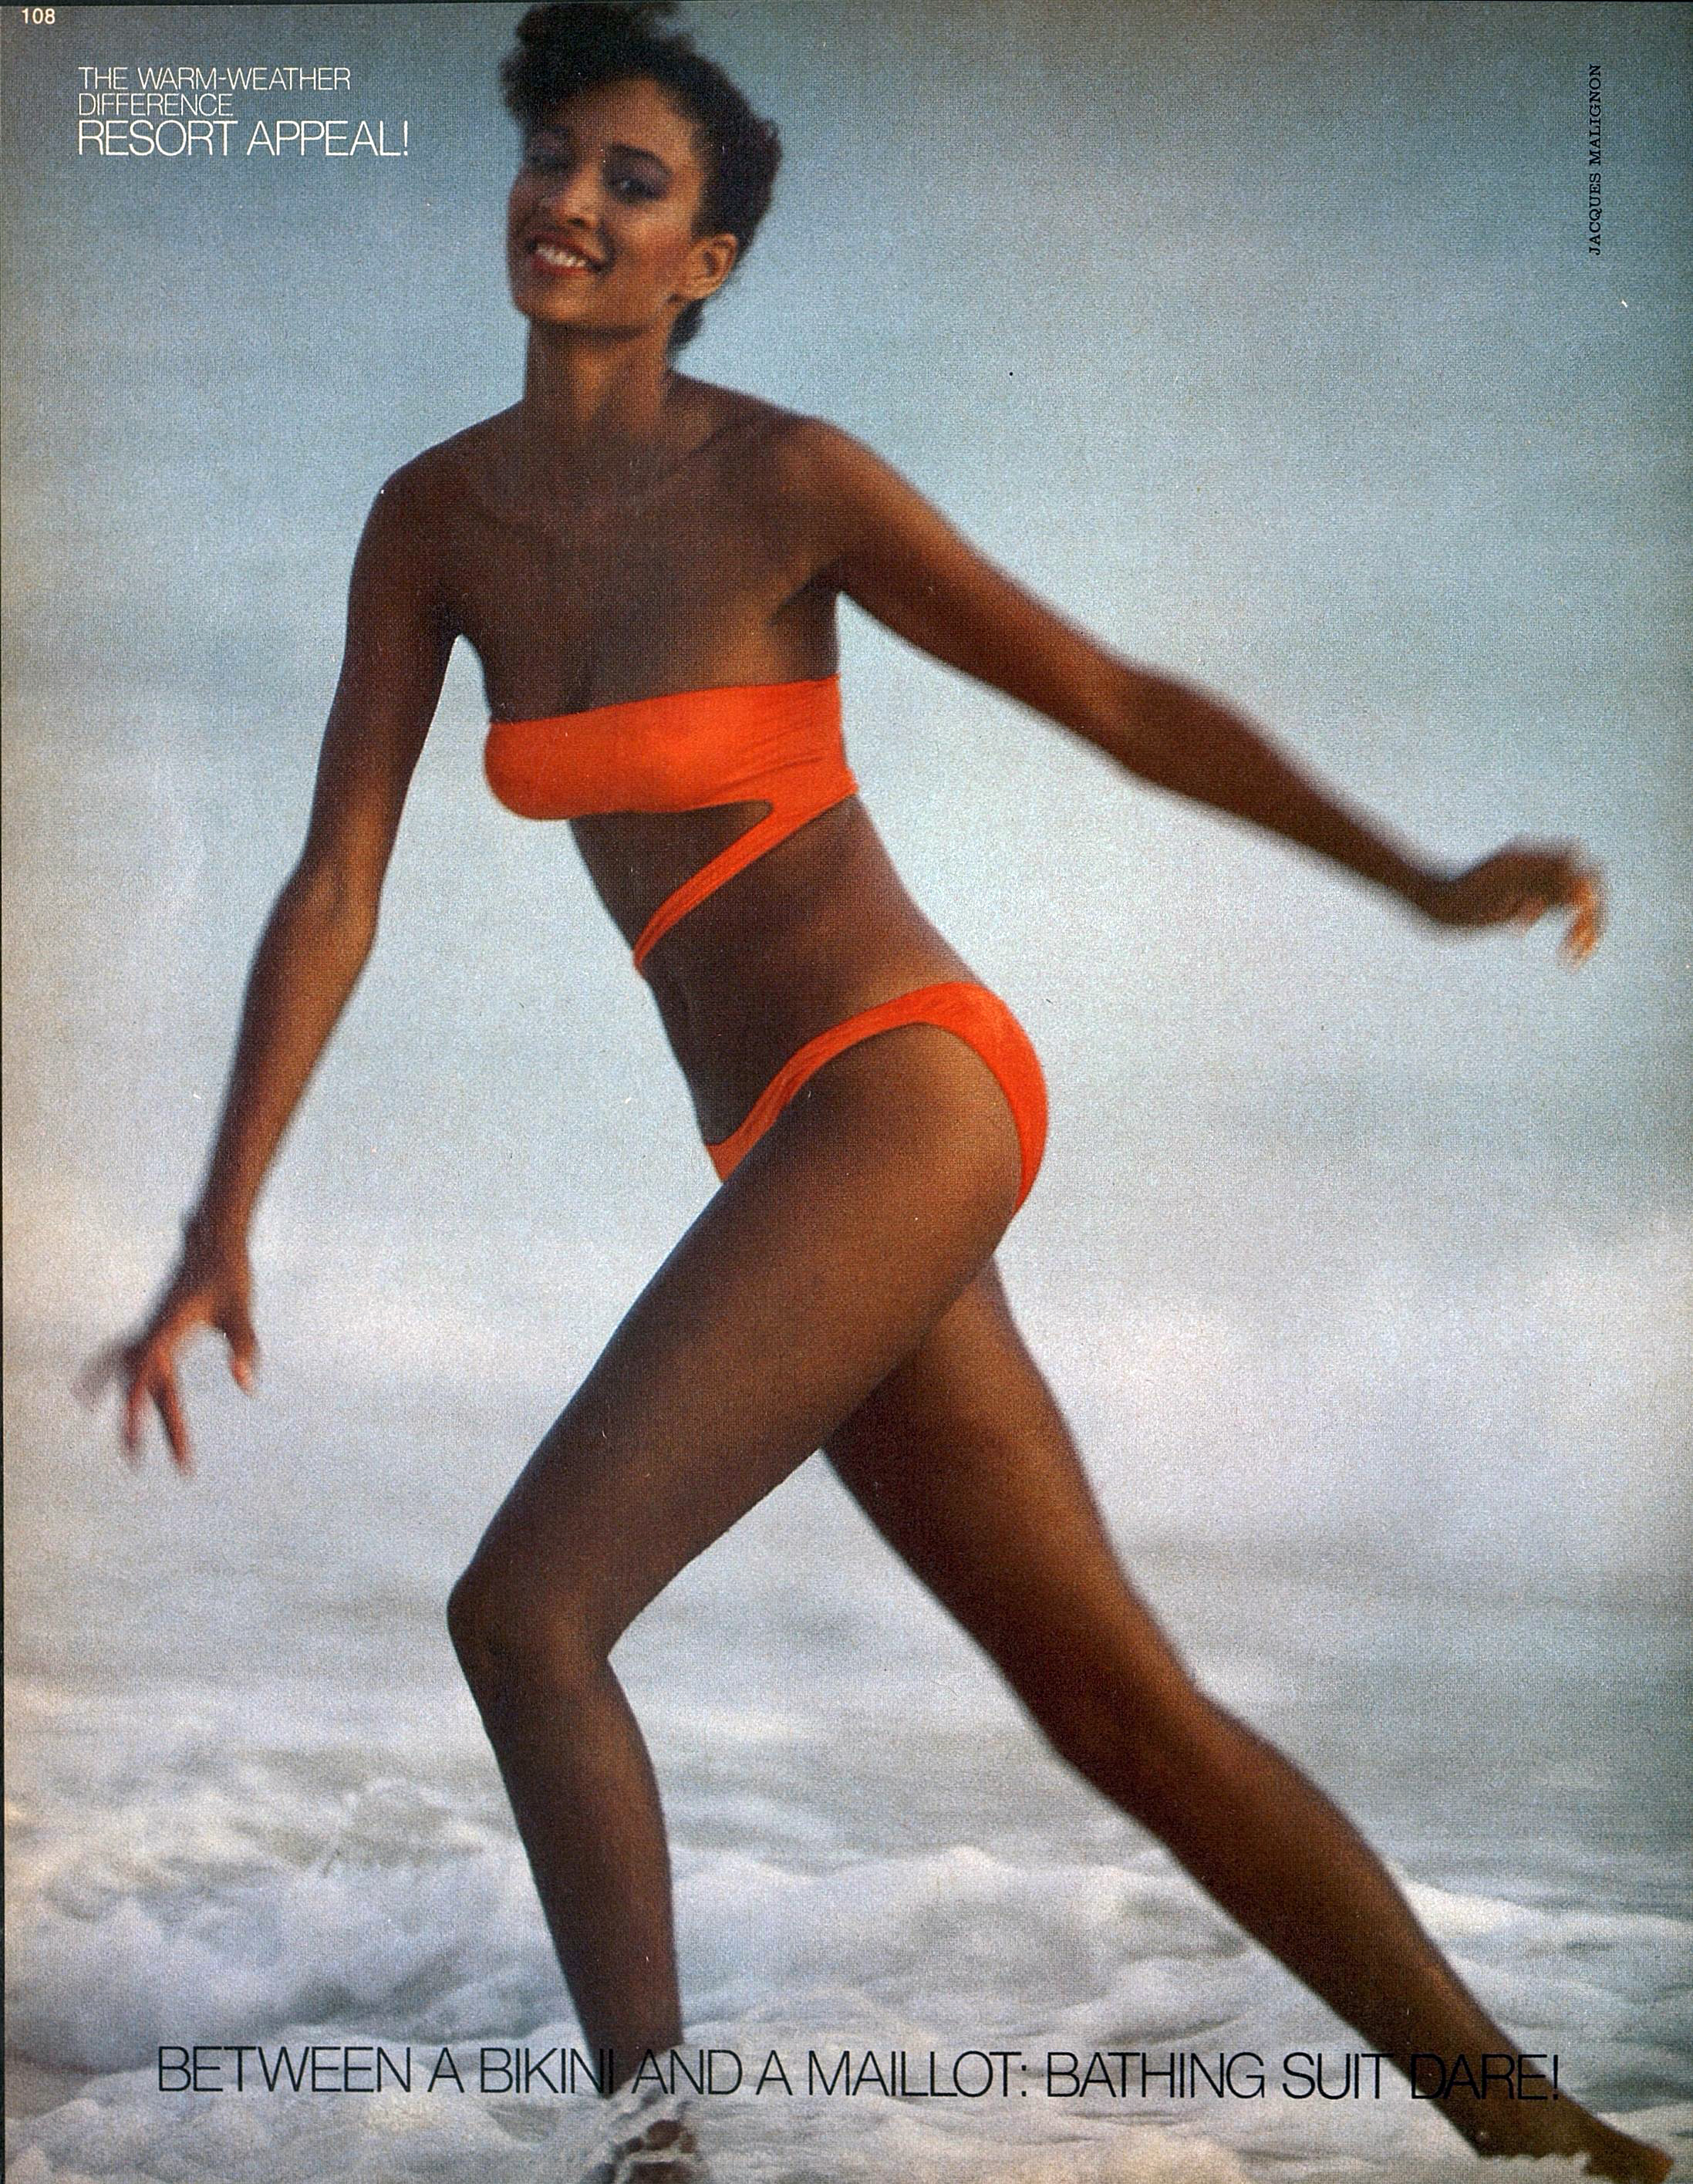 Peggy Dillard in a barely there OMO suit. Photo by Jacques Malignon for Harper's Bazaar, January 1980.